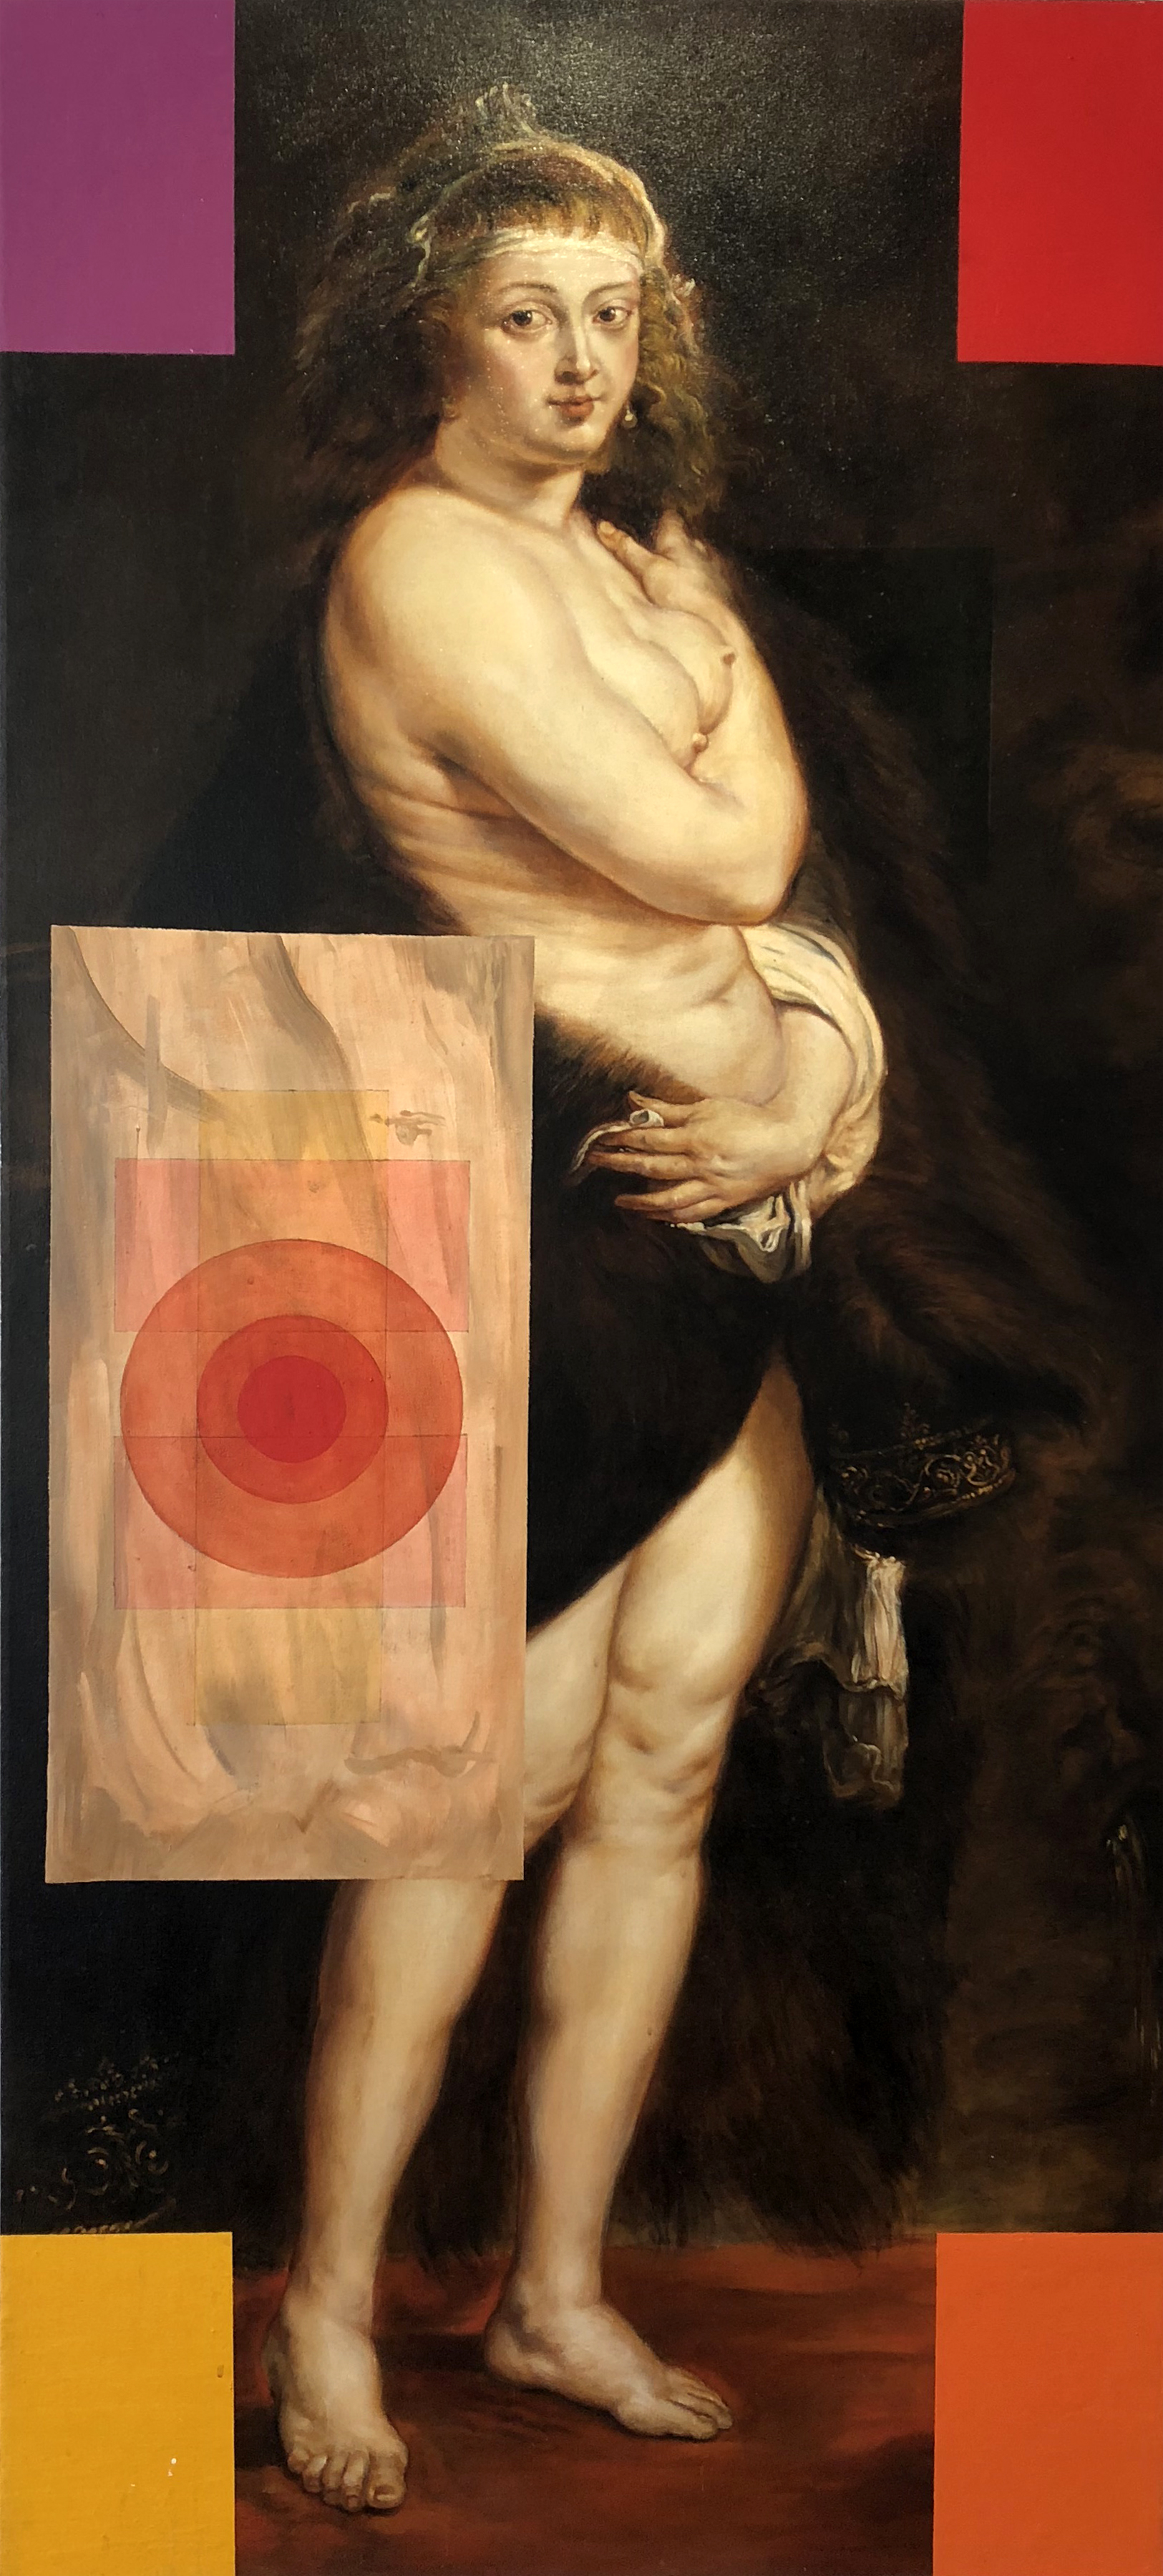 OSVALDO ROMBERG | Untitled - Rubens (Paradigm Series), 66 x 30 inches / 167.5 x 76 cm, oil on canvas, 2008